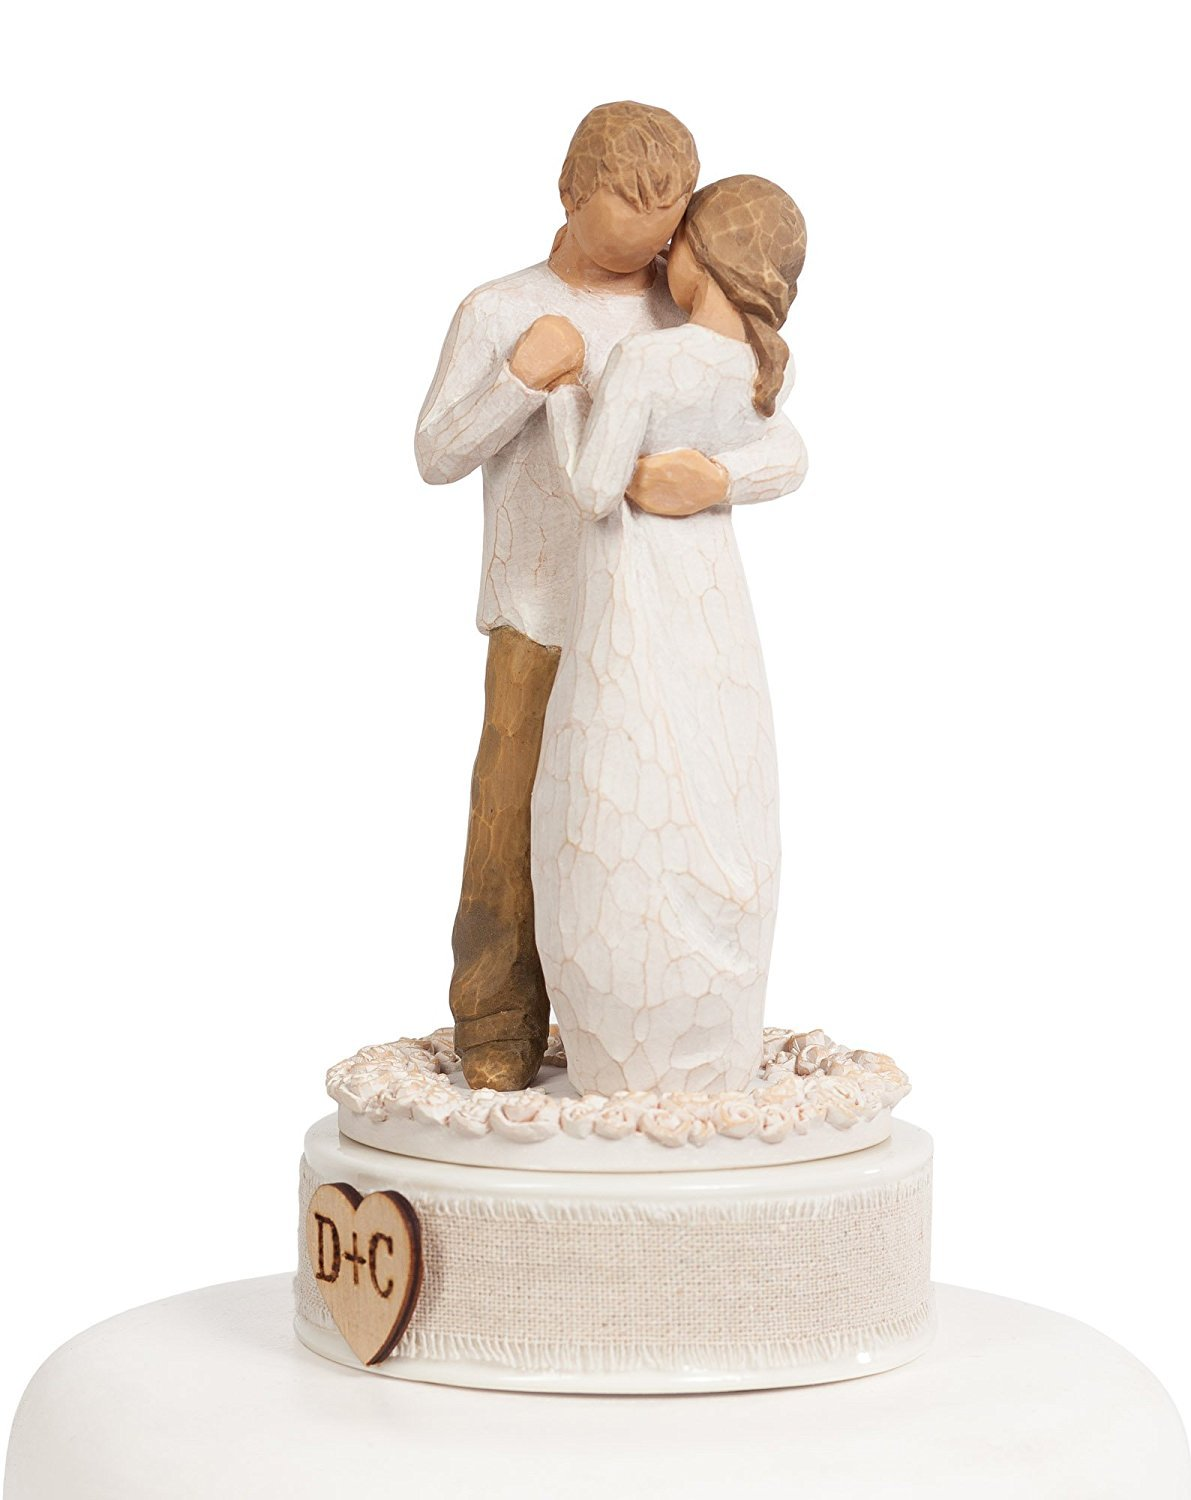 Personalized Willow Tree''Promise'' Wedding Cake Topper By Wedding Collectibles by DEMDACO - Home (Image #2)